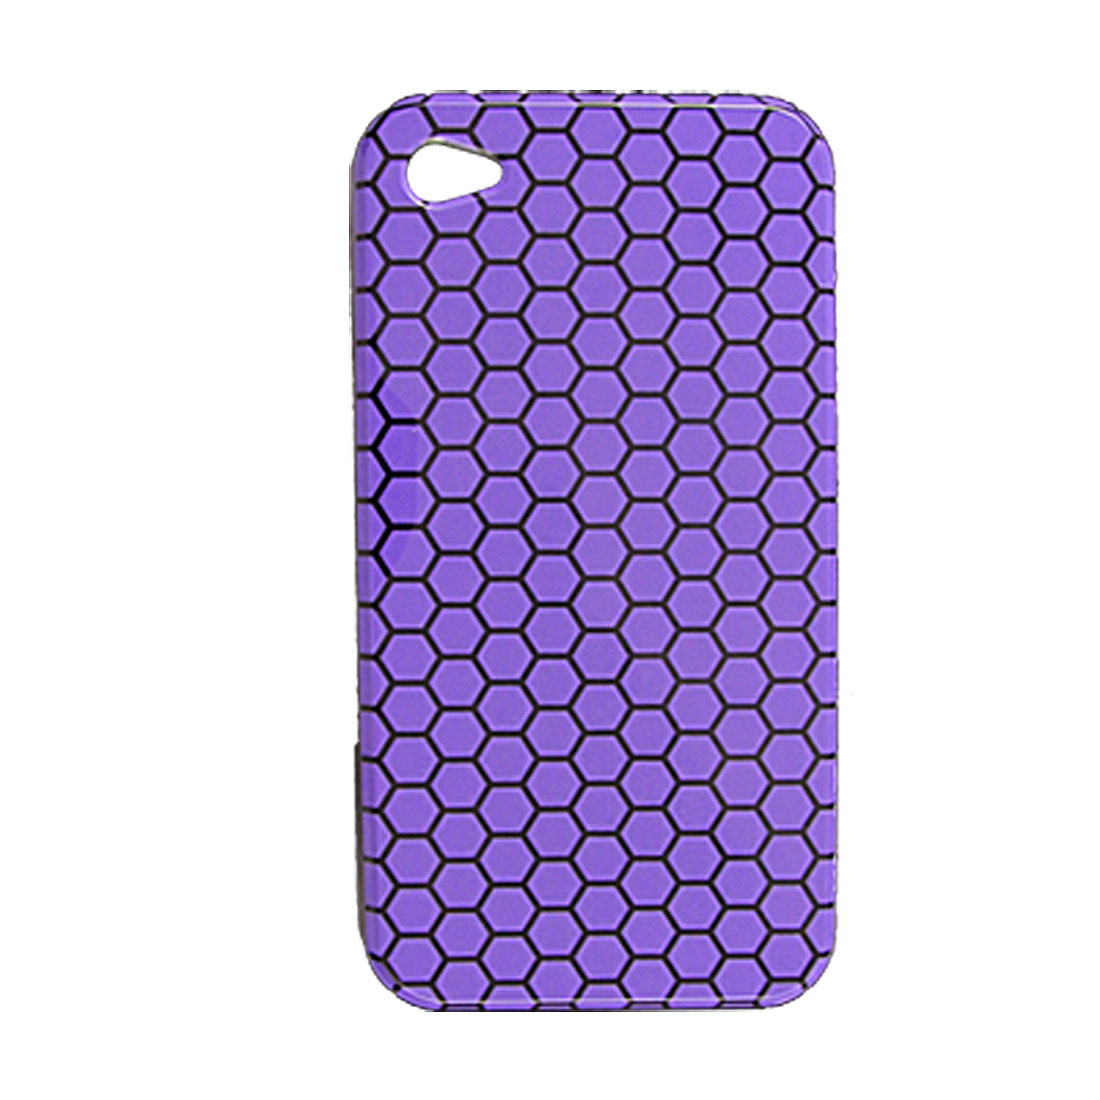 Plastic Purple Back Black Hexagonal Case for iPhone 4 4G